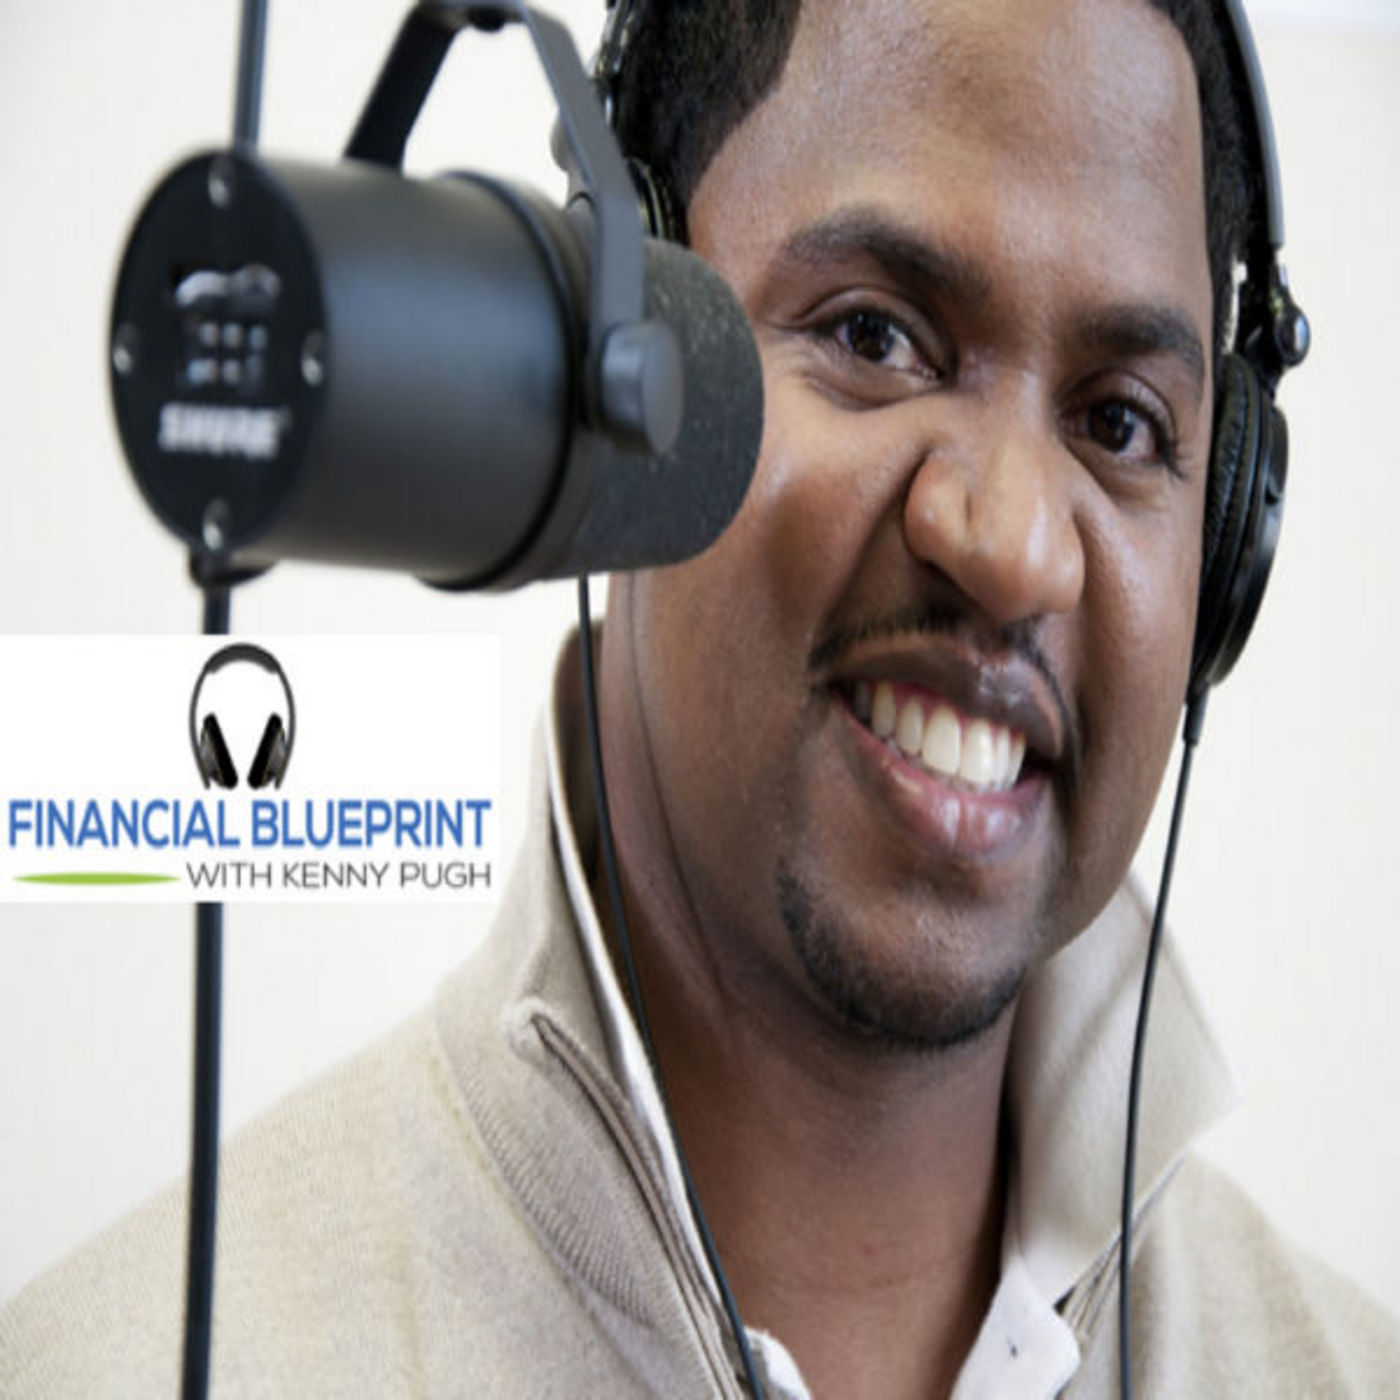 Financial Blueprint with Kenny Pugh